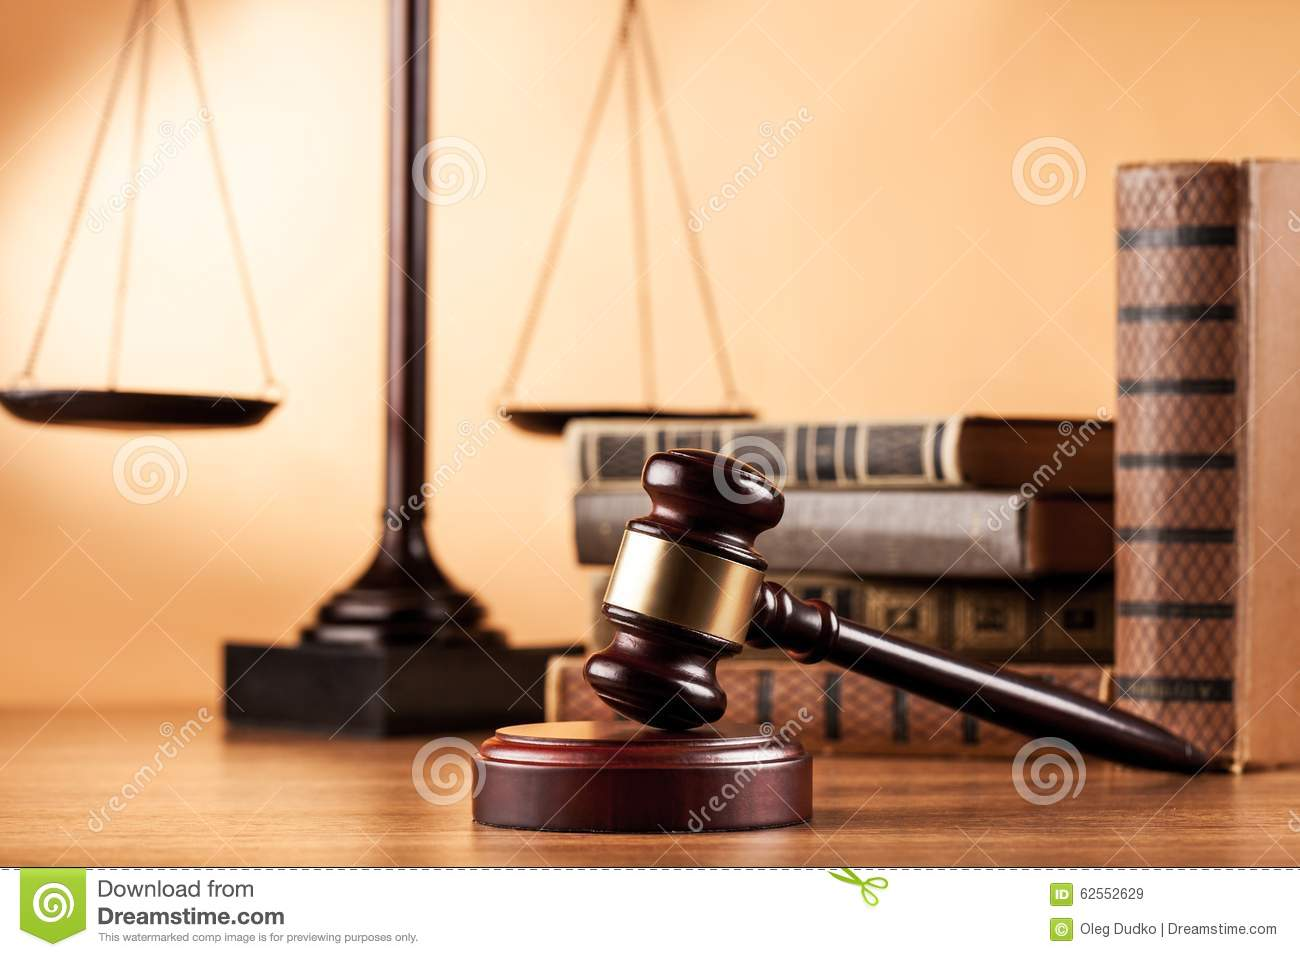 law business court Find out more about business law lawyerscom provides legal information and can help you find an attorney experienced in cases involving business and the law.